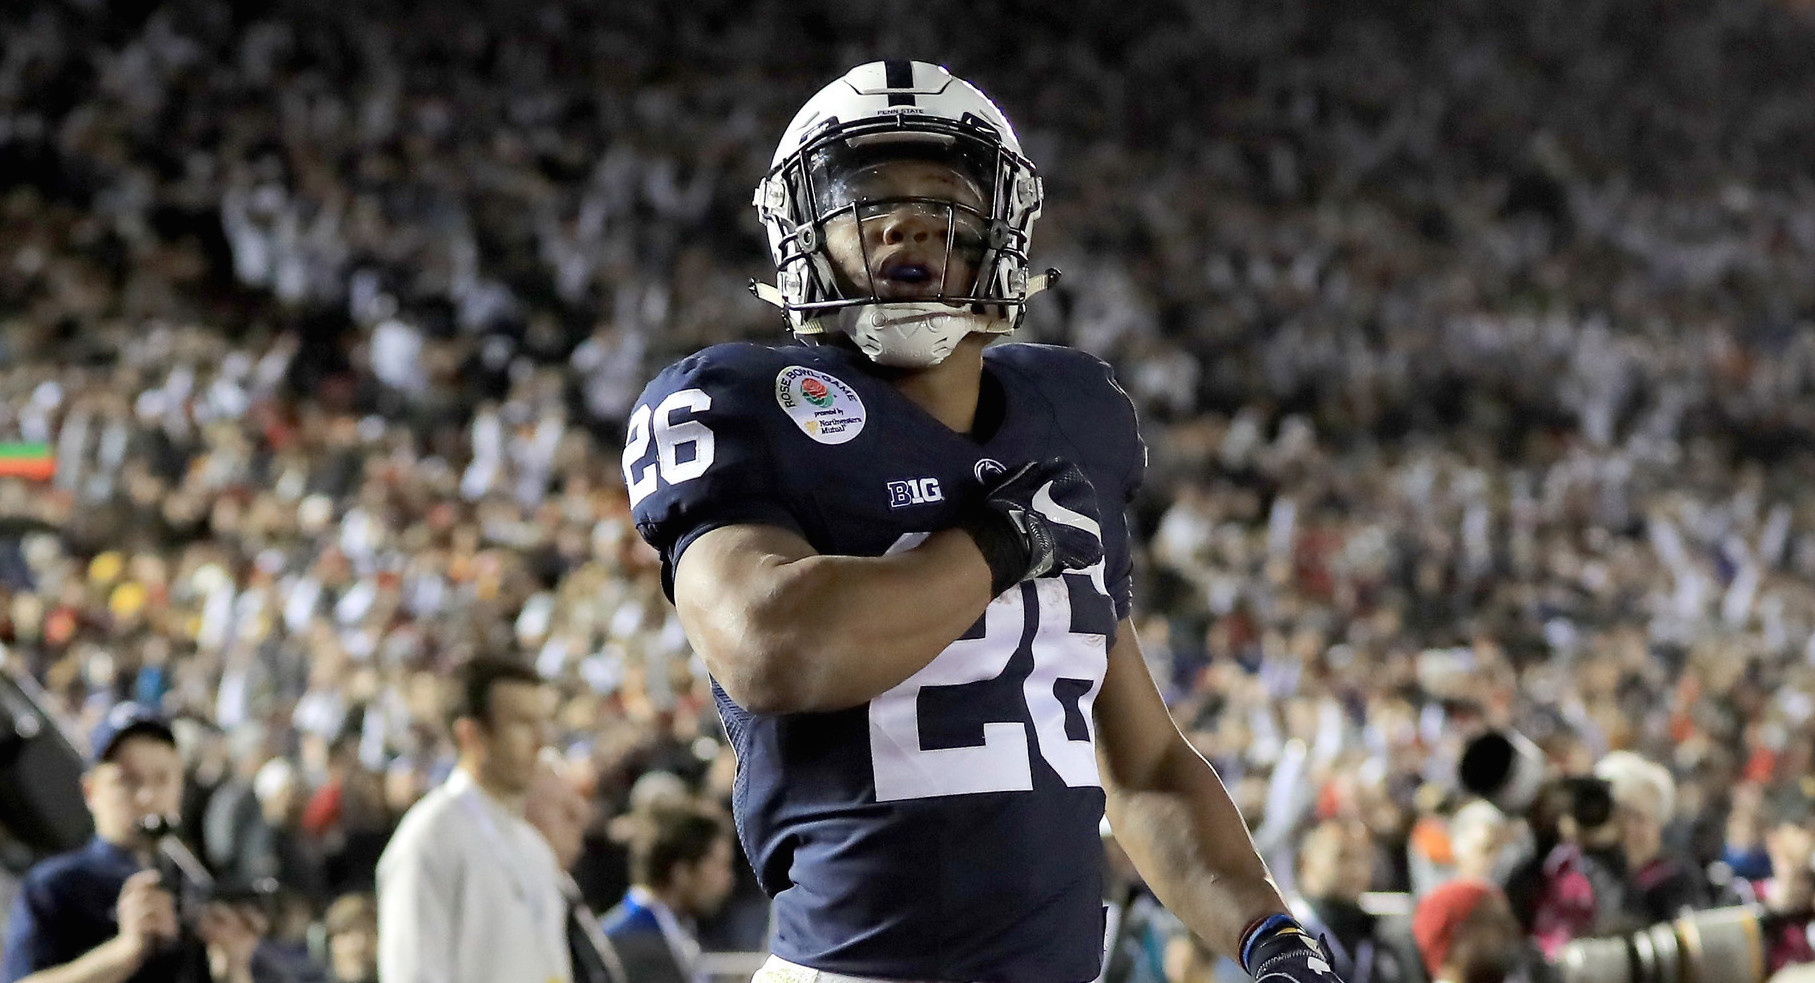 mc-penn-state-football-saquon-barkley-future-20170120